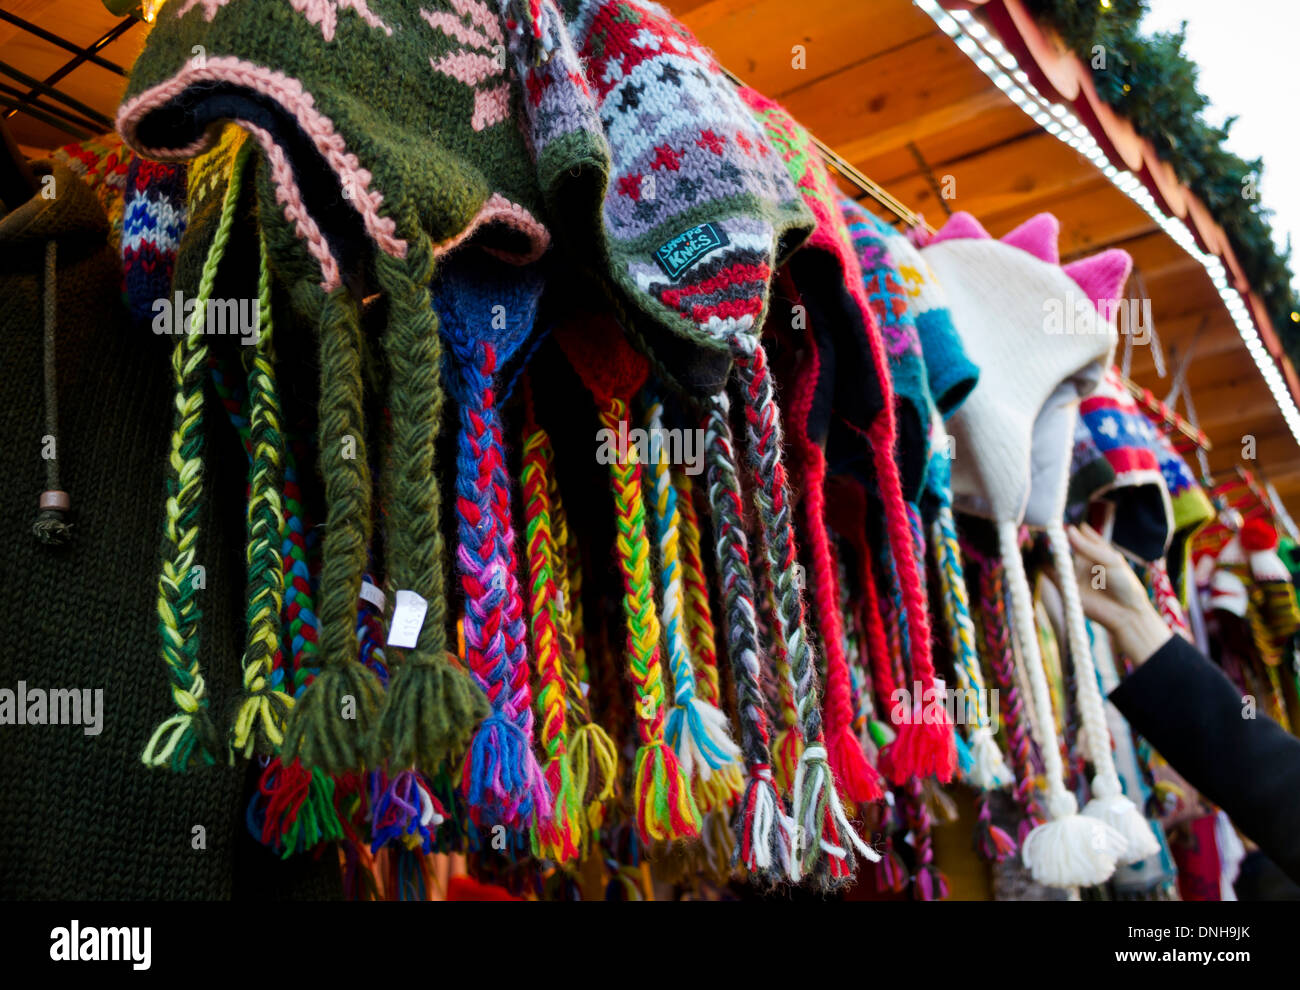 A selection of colourful sherpa hats, sold at the Sherpa Knits booth at the Vancouver Christmas market. - Stock Image